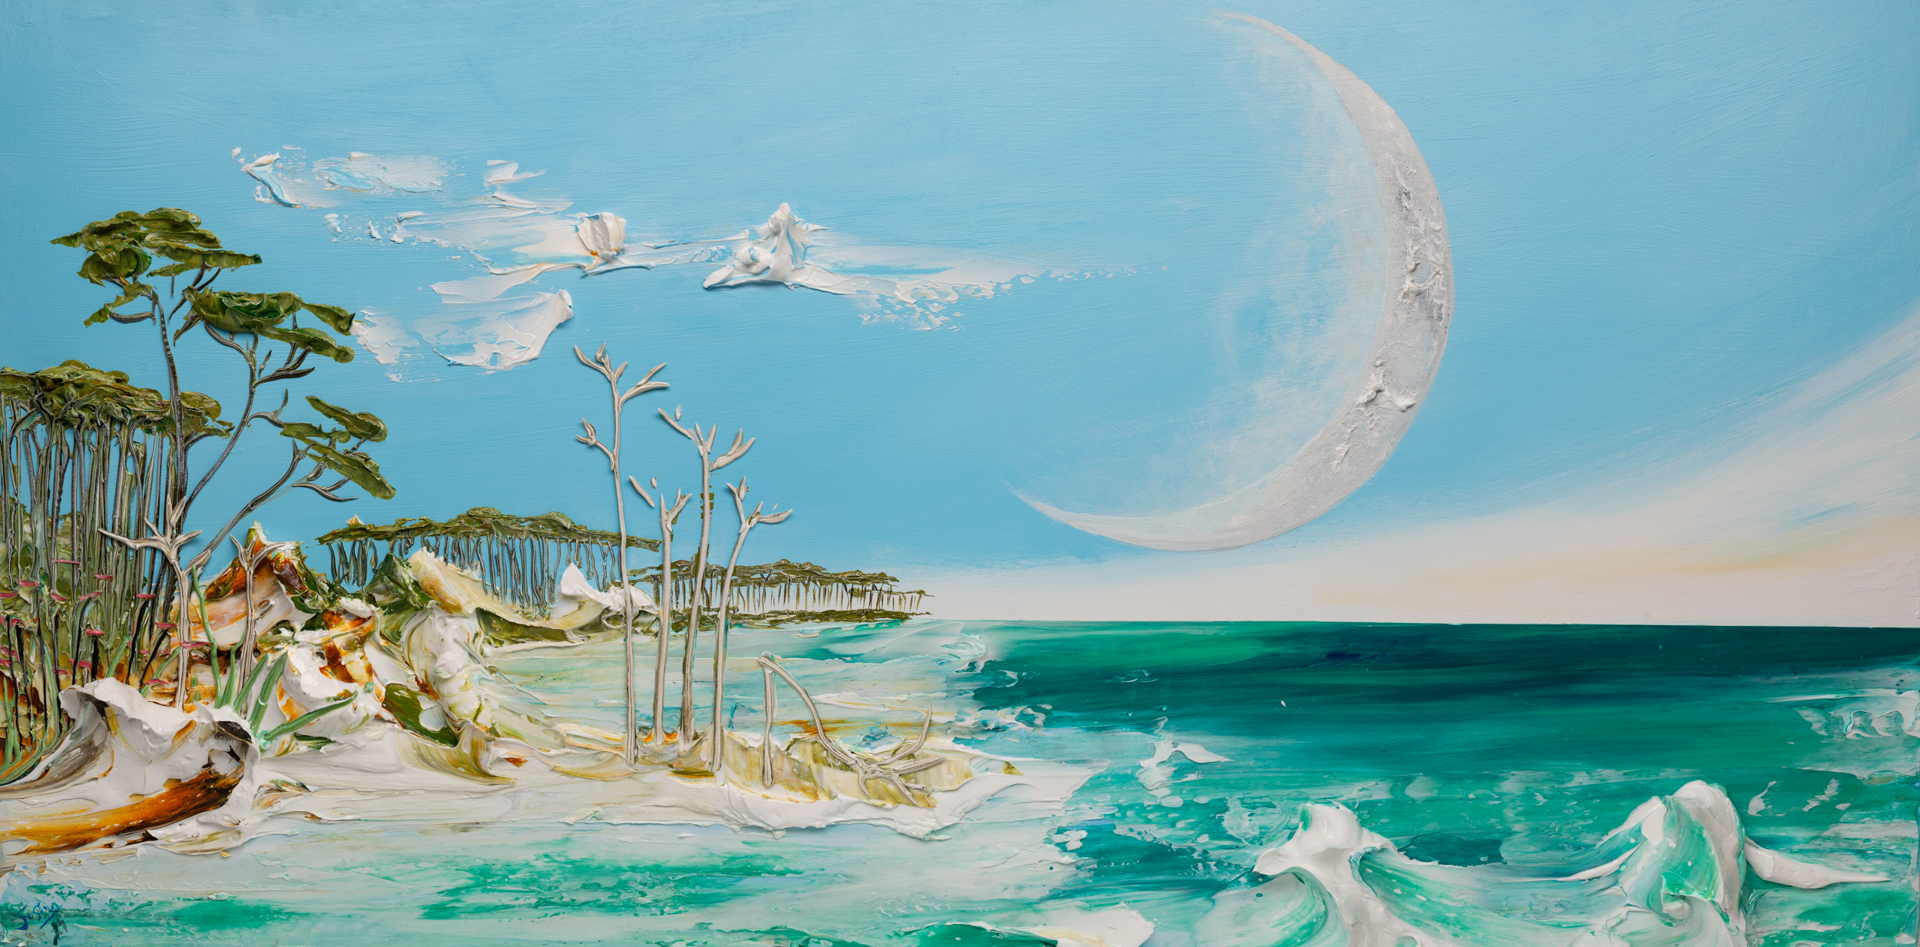 MOONSCAPE MS-60X30-2019-300 by JUSTIN GAFFREY